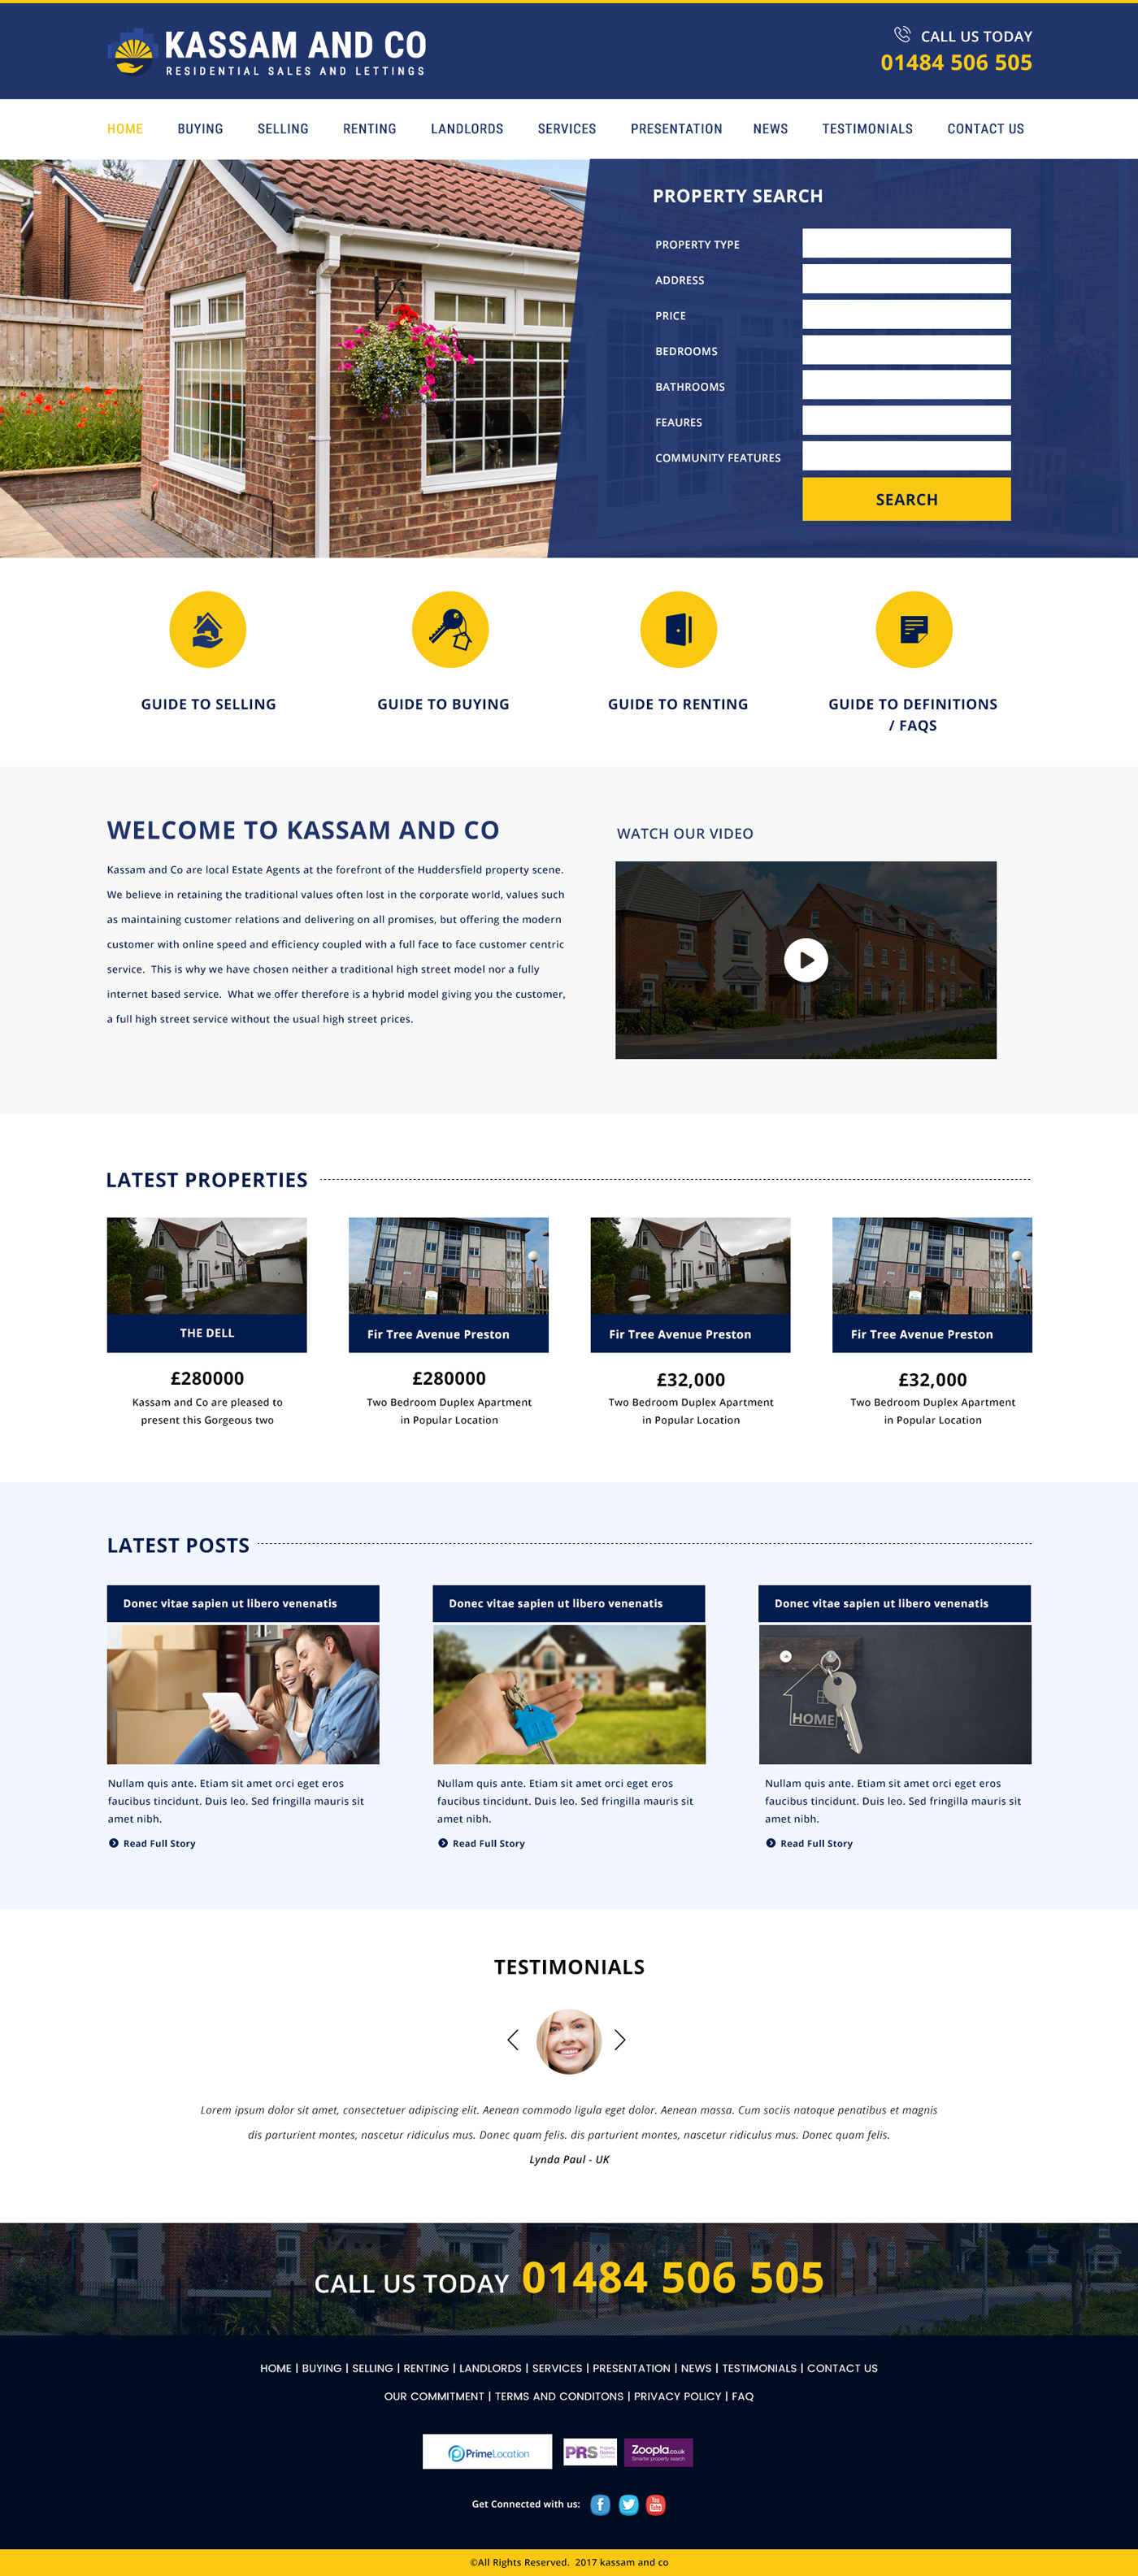 Property website design, rental website design, property sales website design